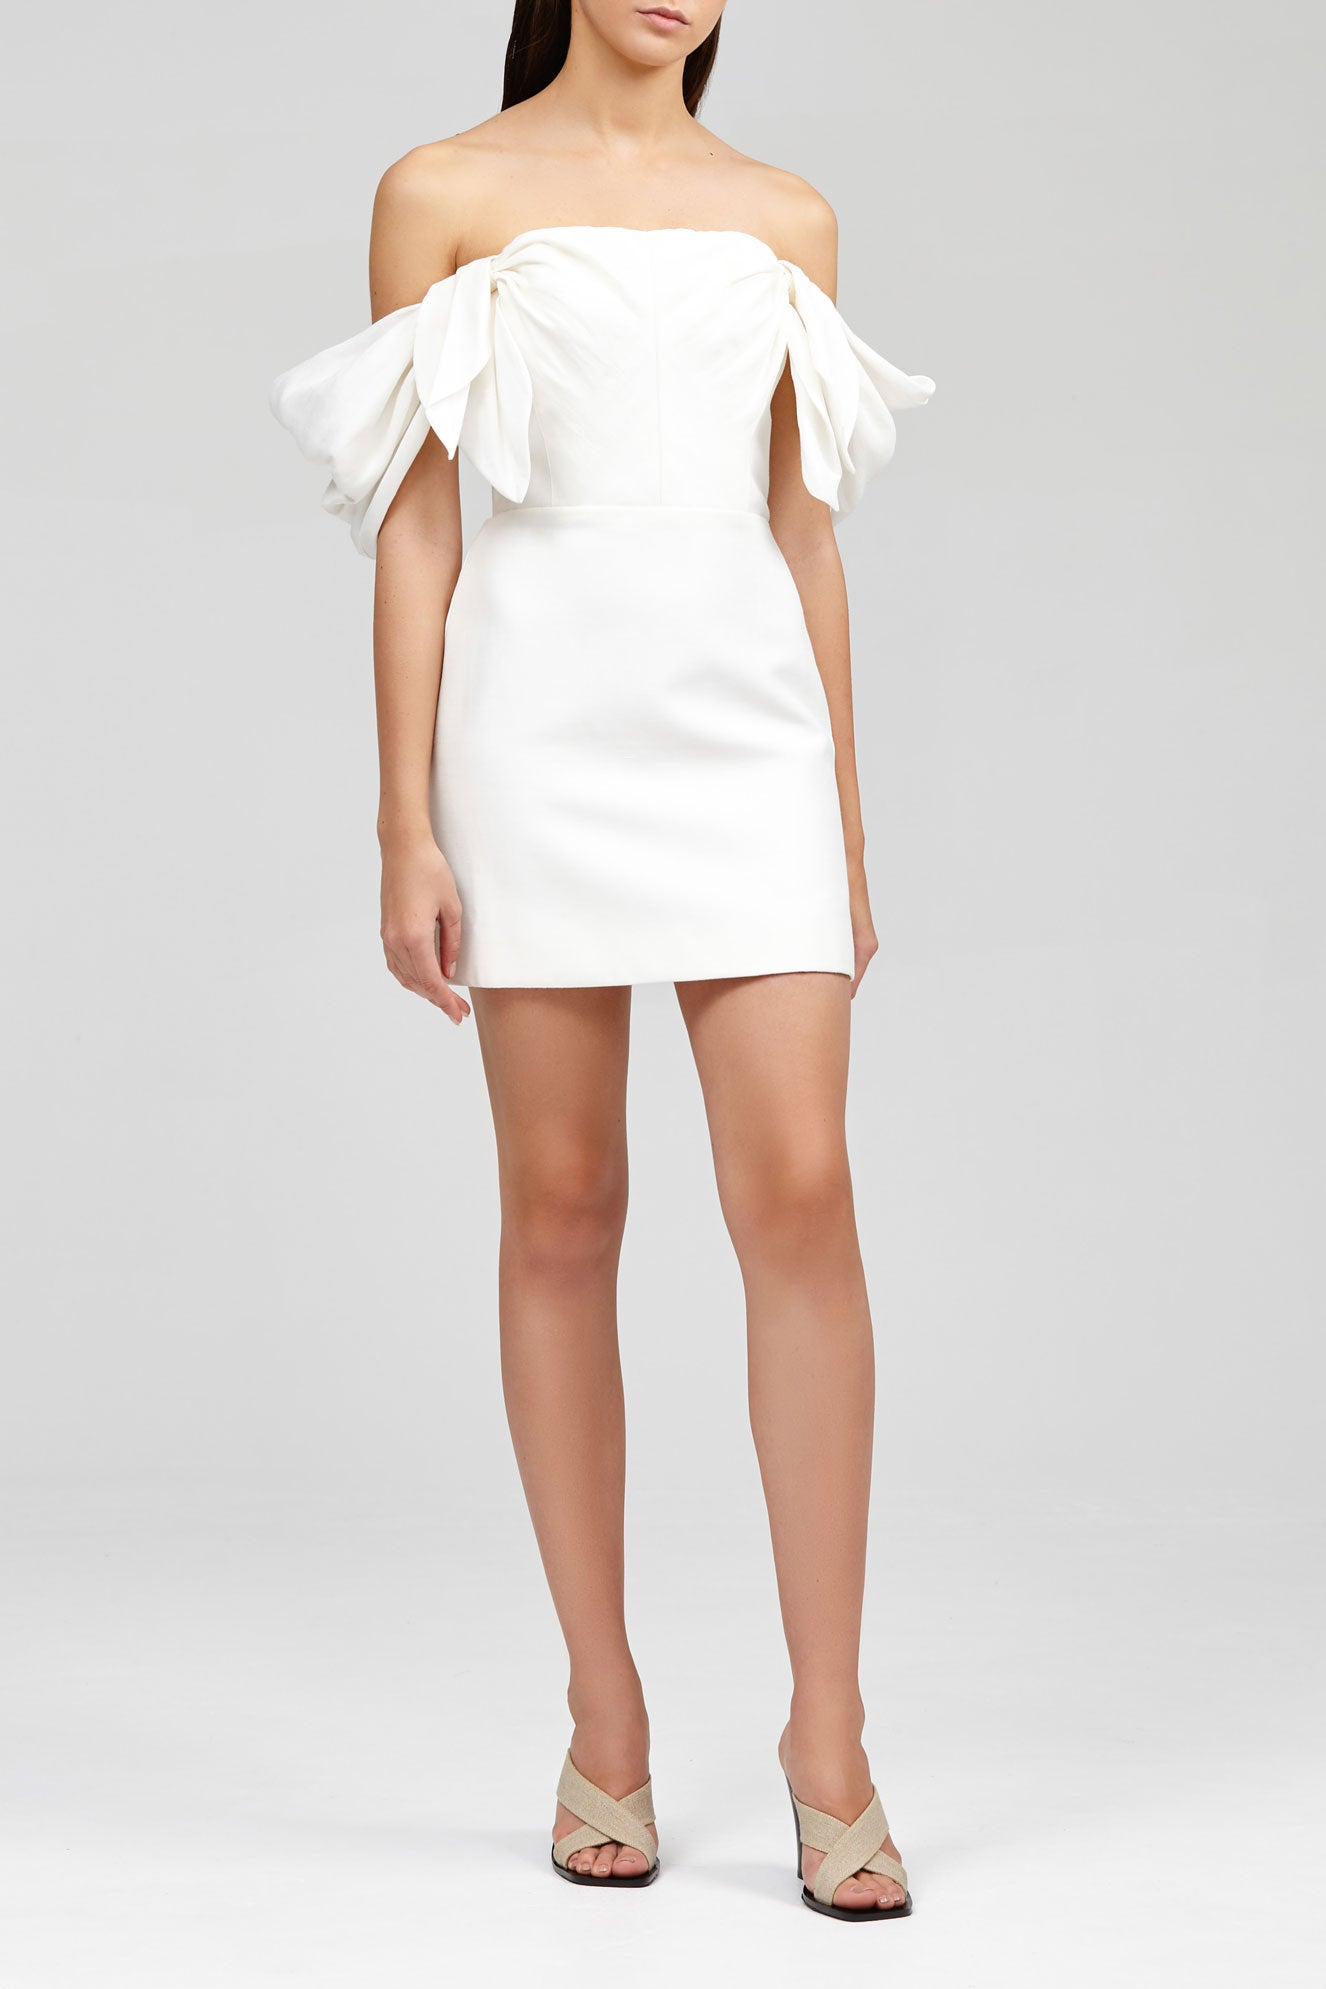 SELKIN DRESS